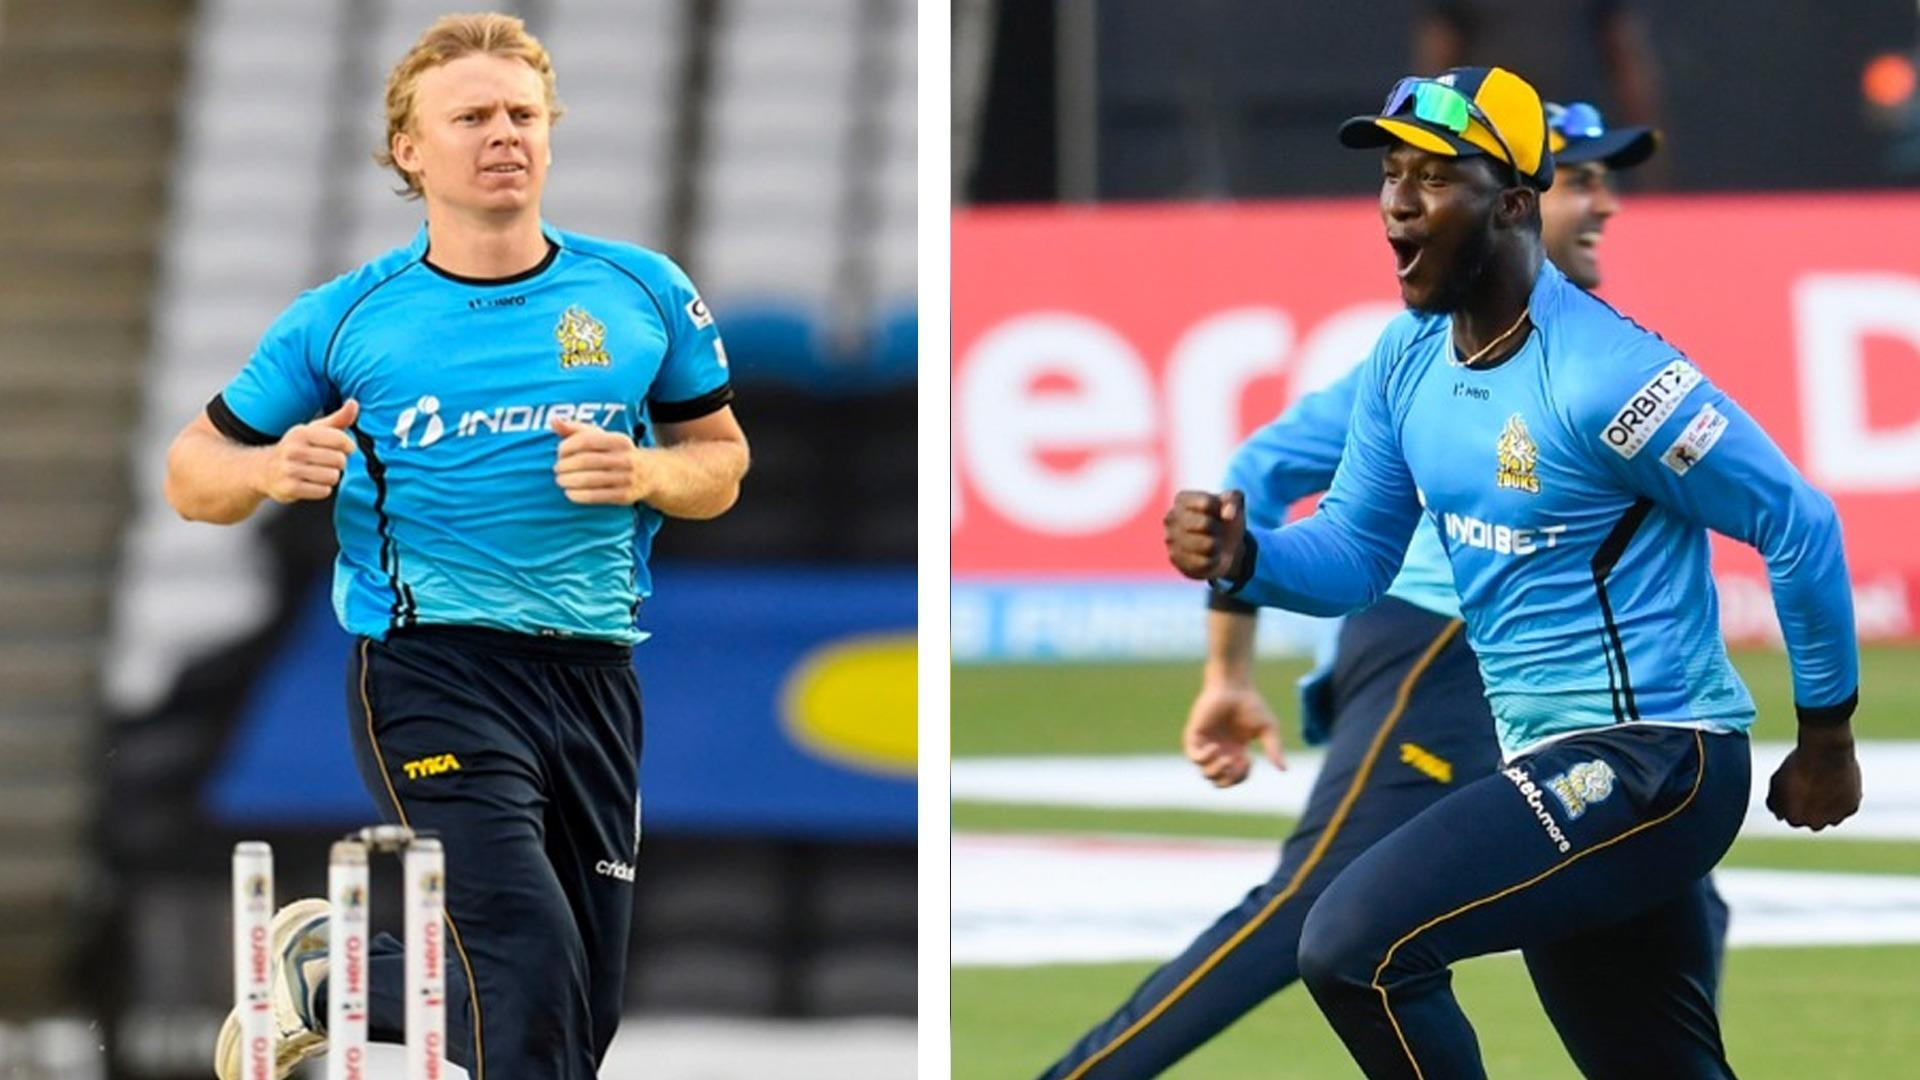 Kuggeleijn, Sammy end CPL 2020 with momentous personal honours